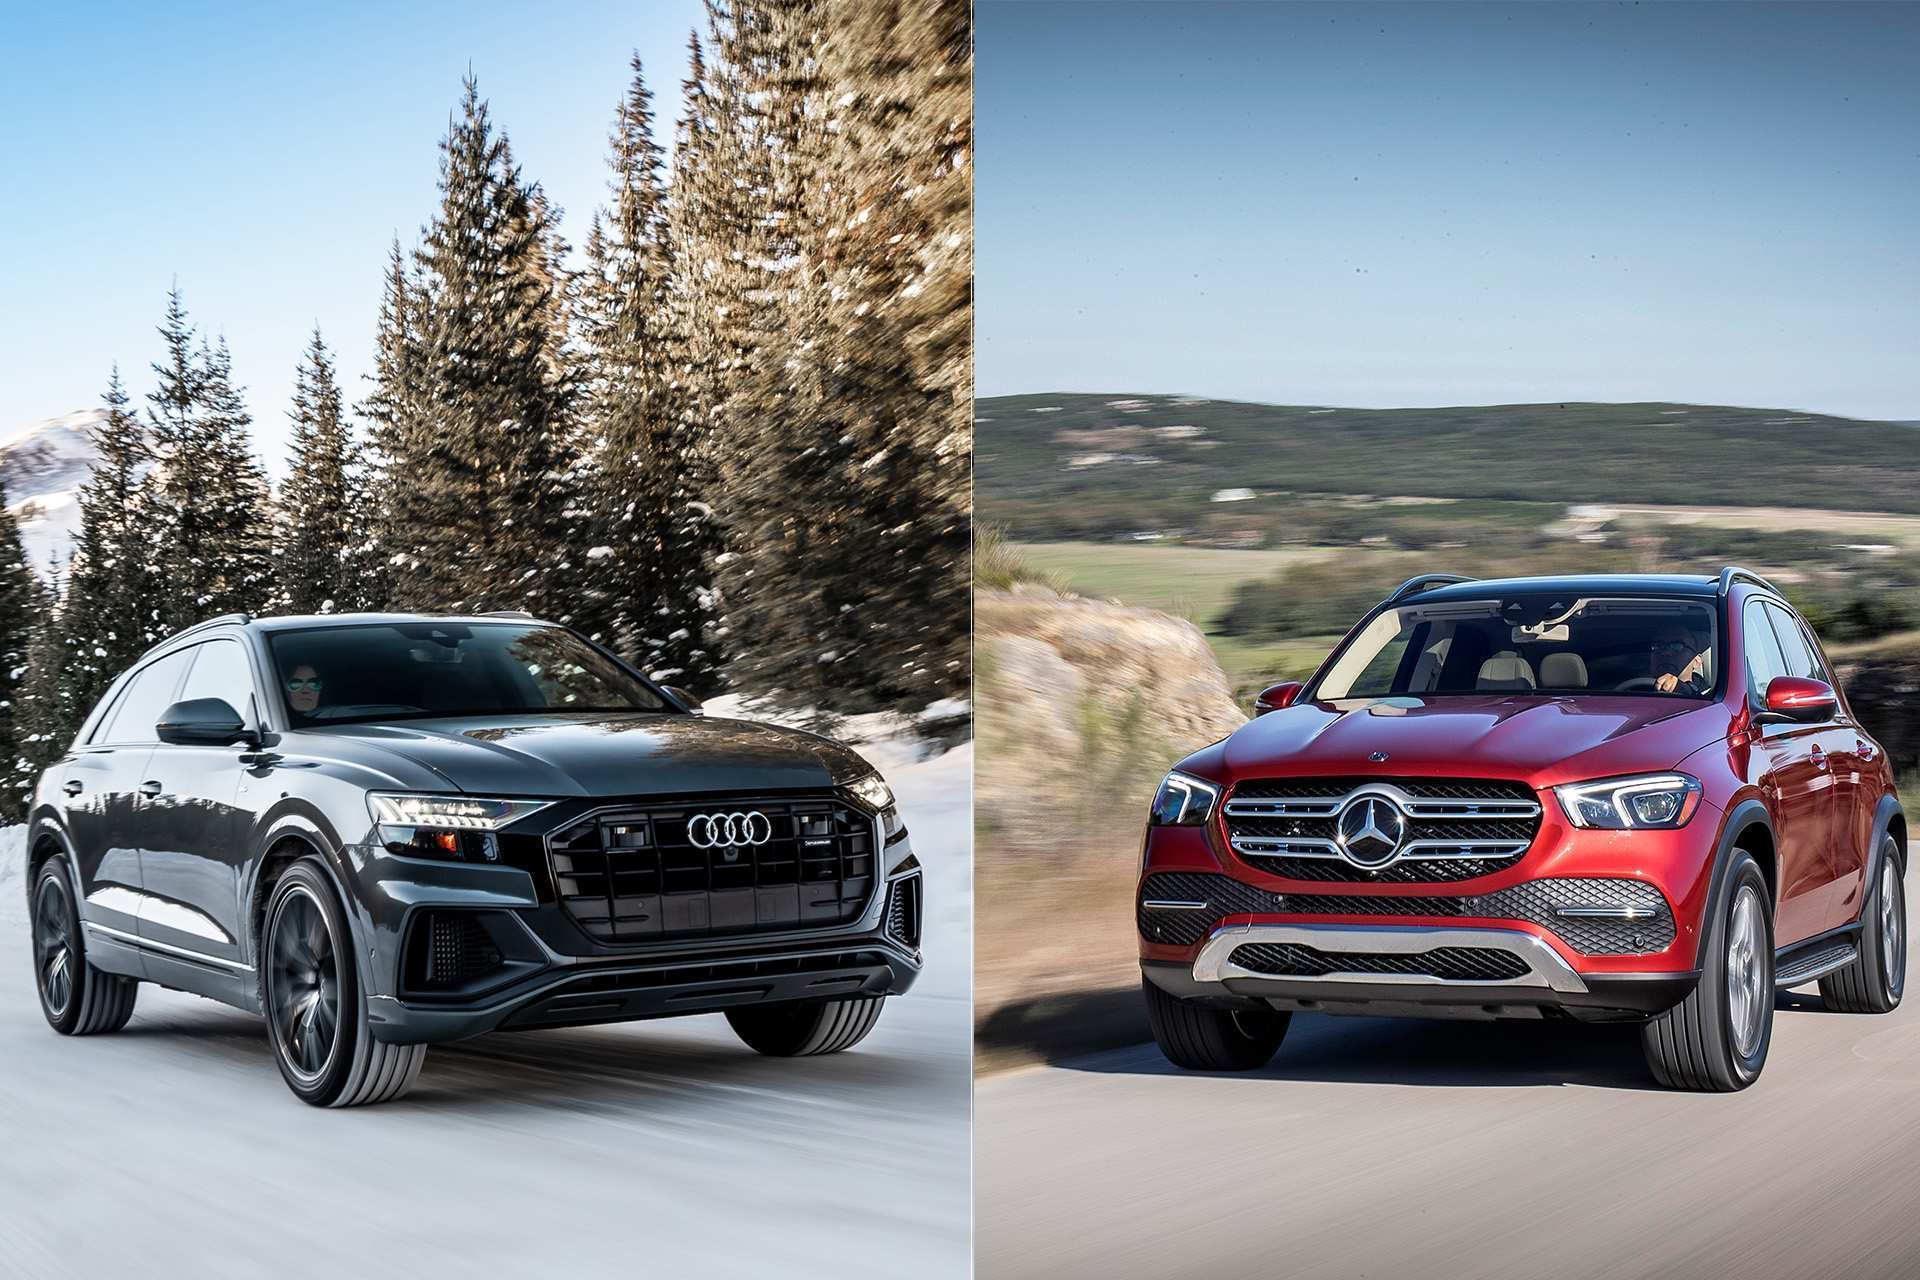 52 All New 2020 Audi Q8 Configurations